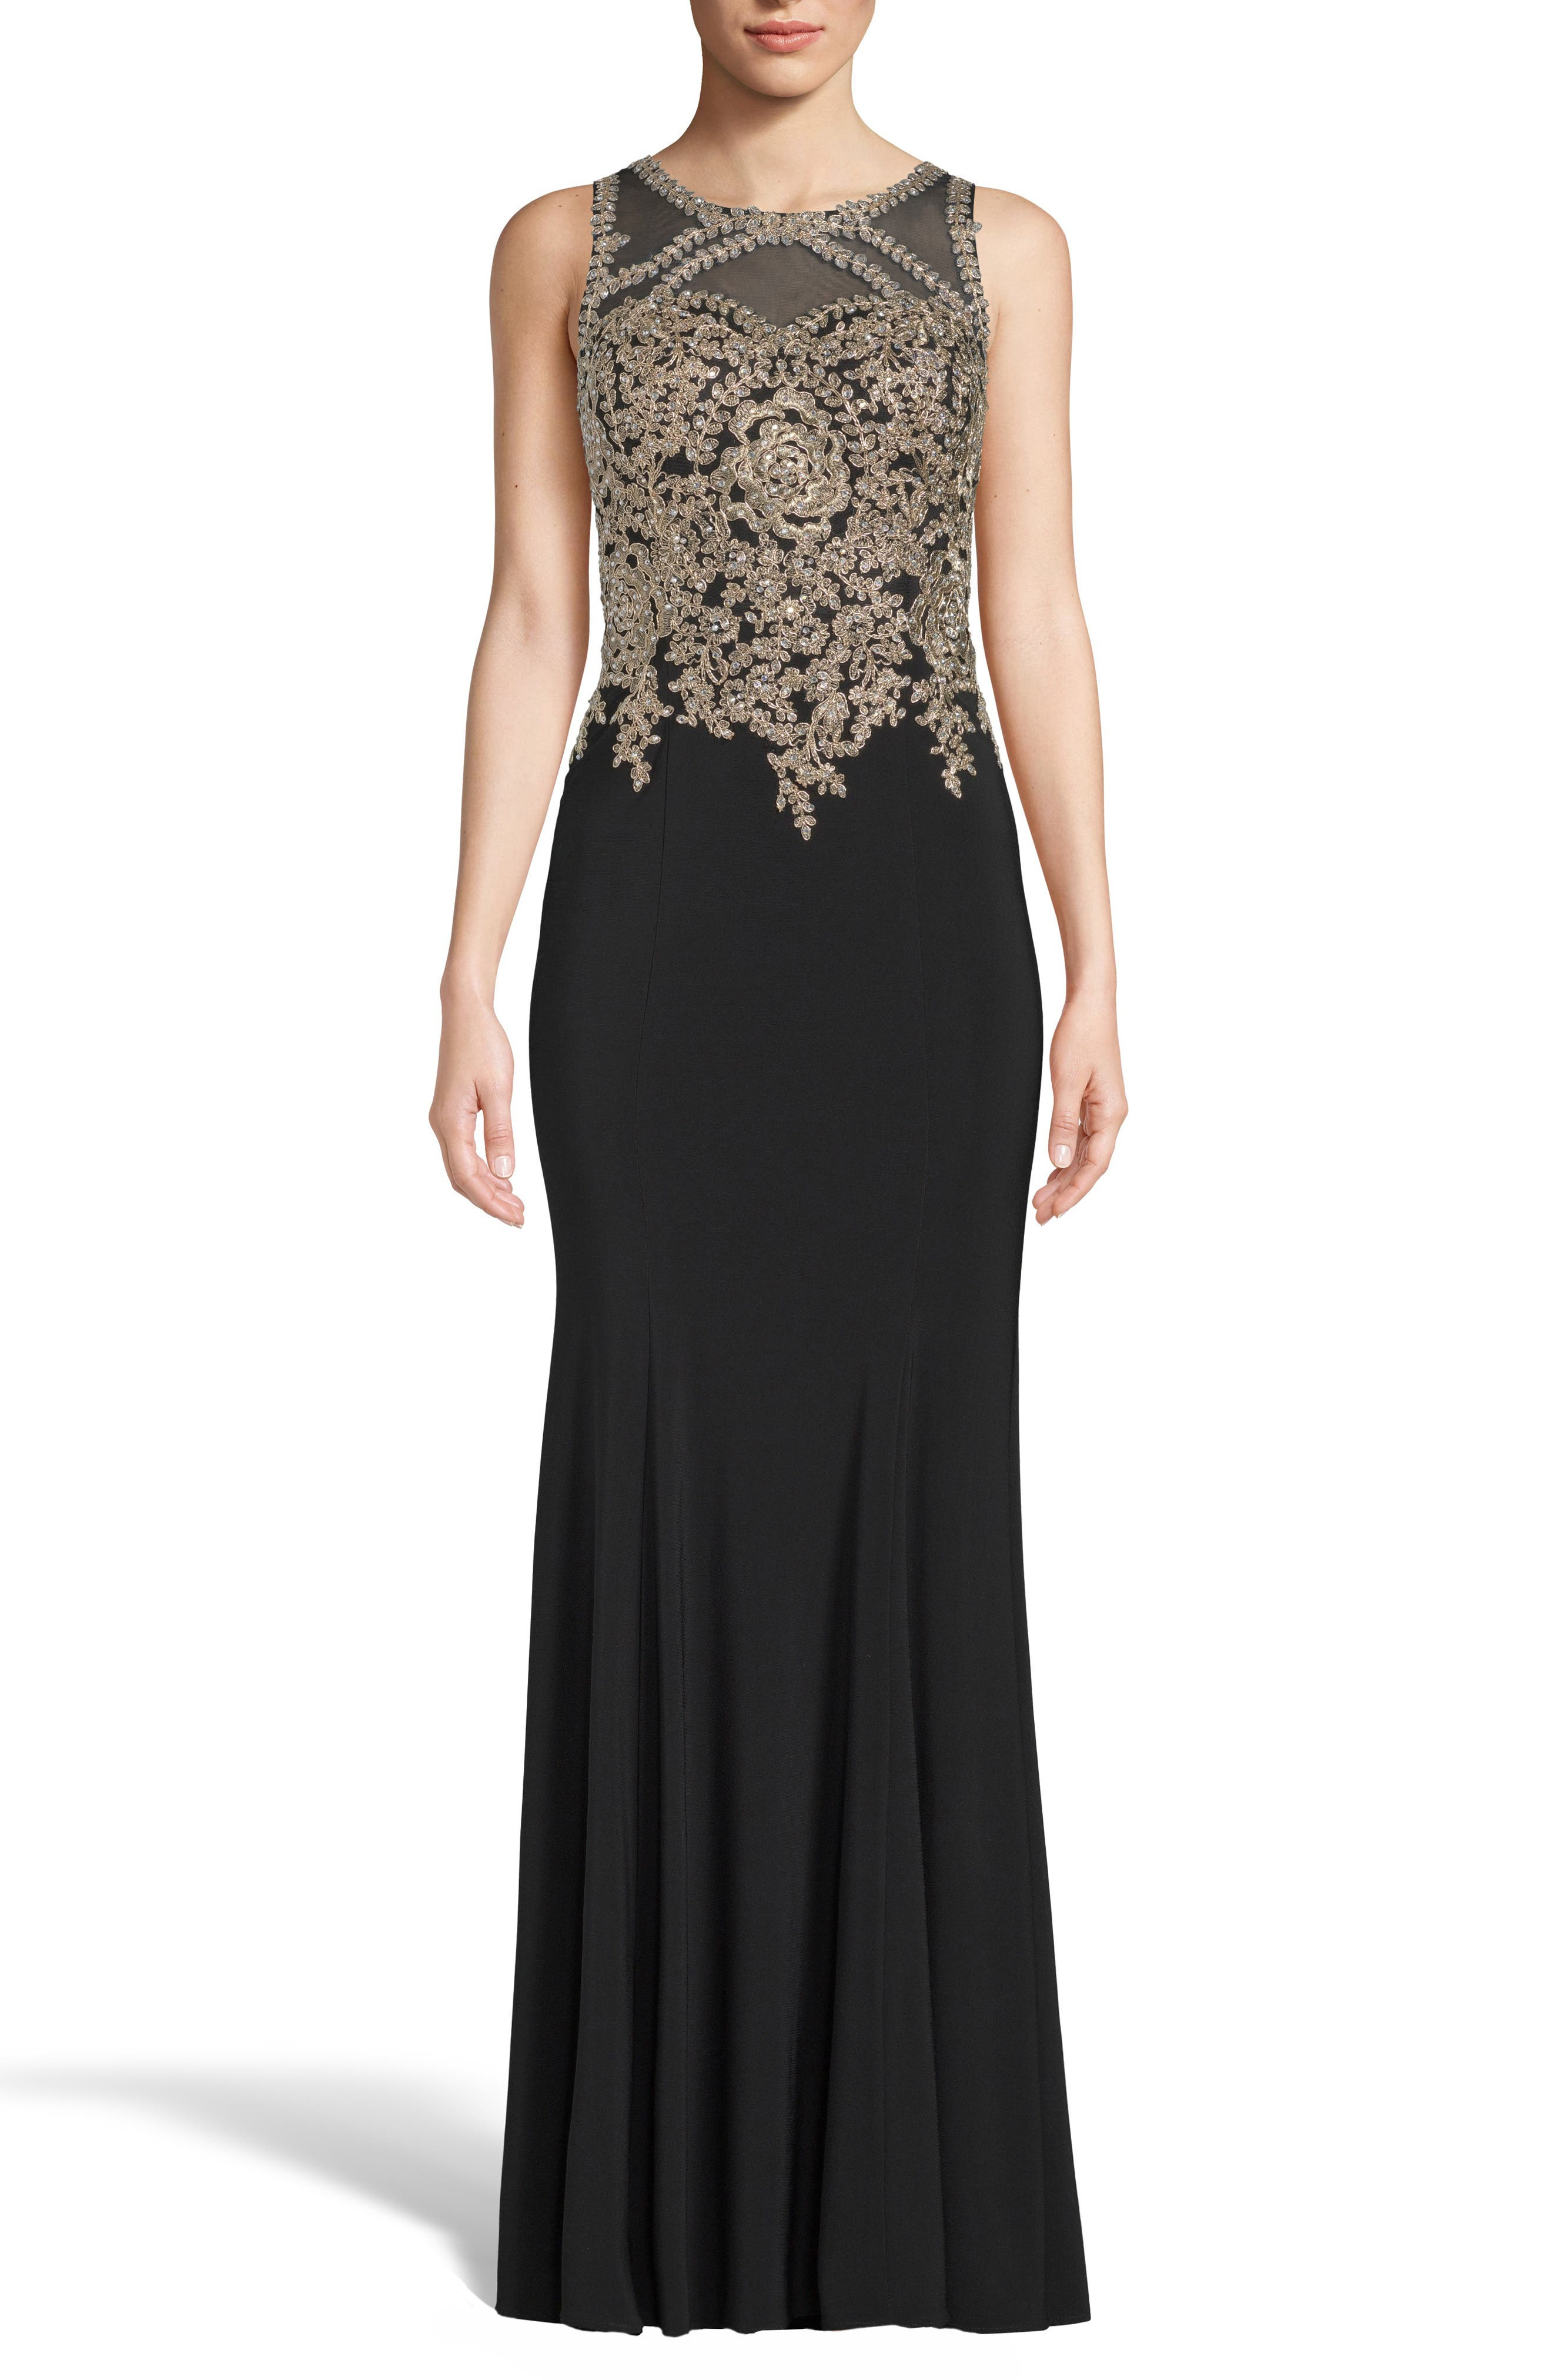 Xscape Golden Embroidered Bodice Evening Dress, Black